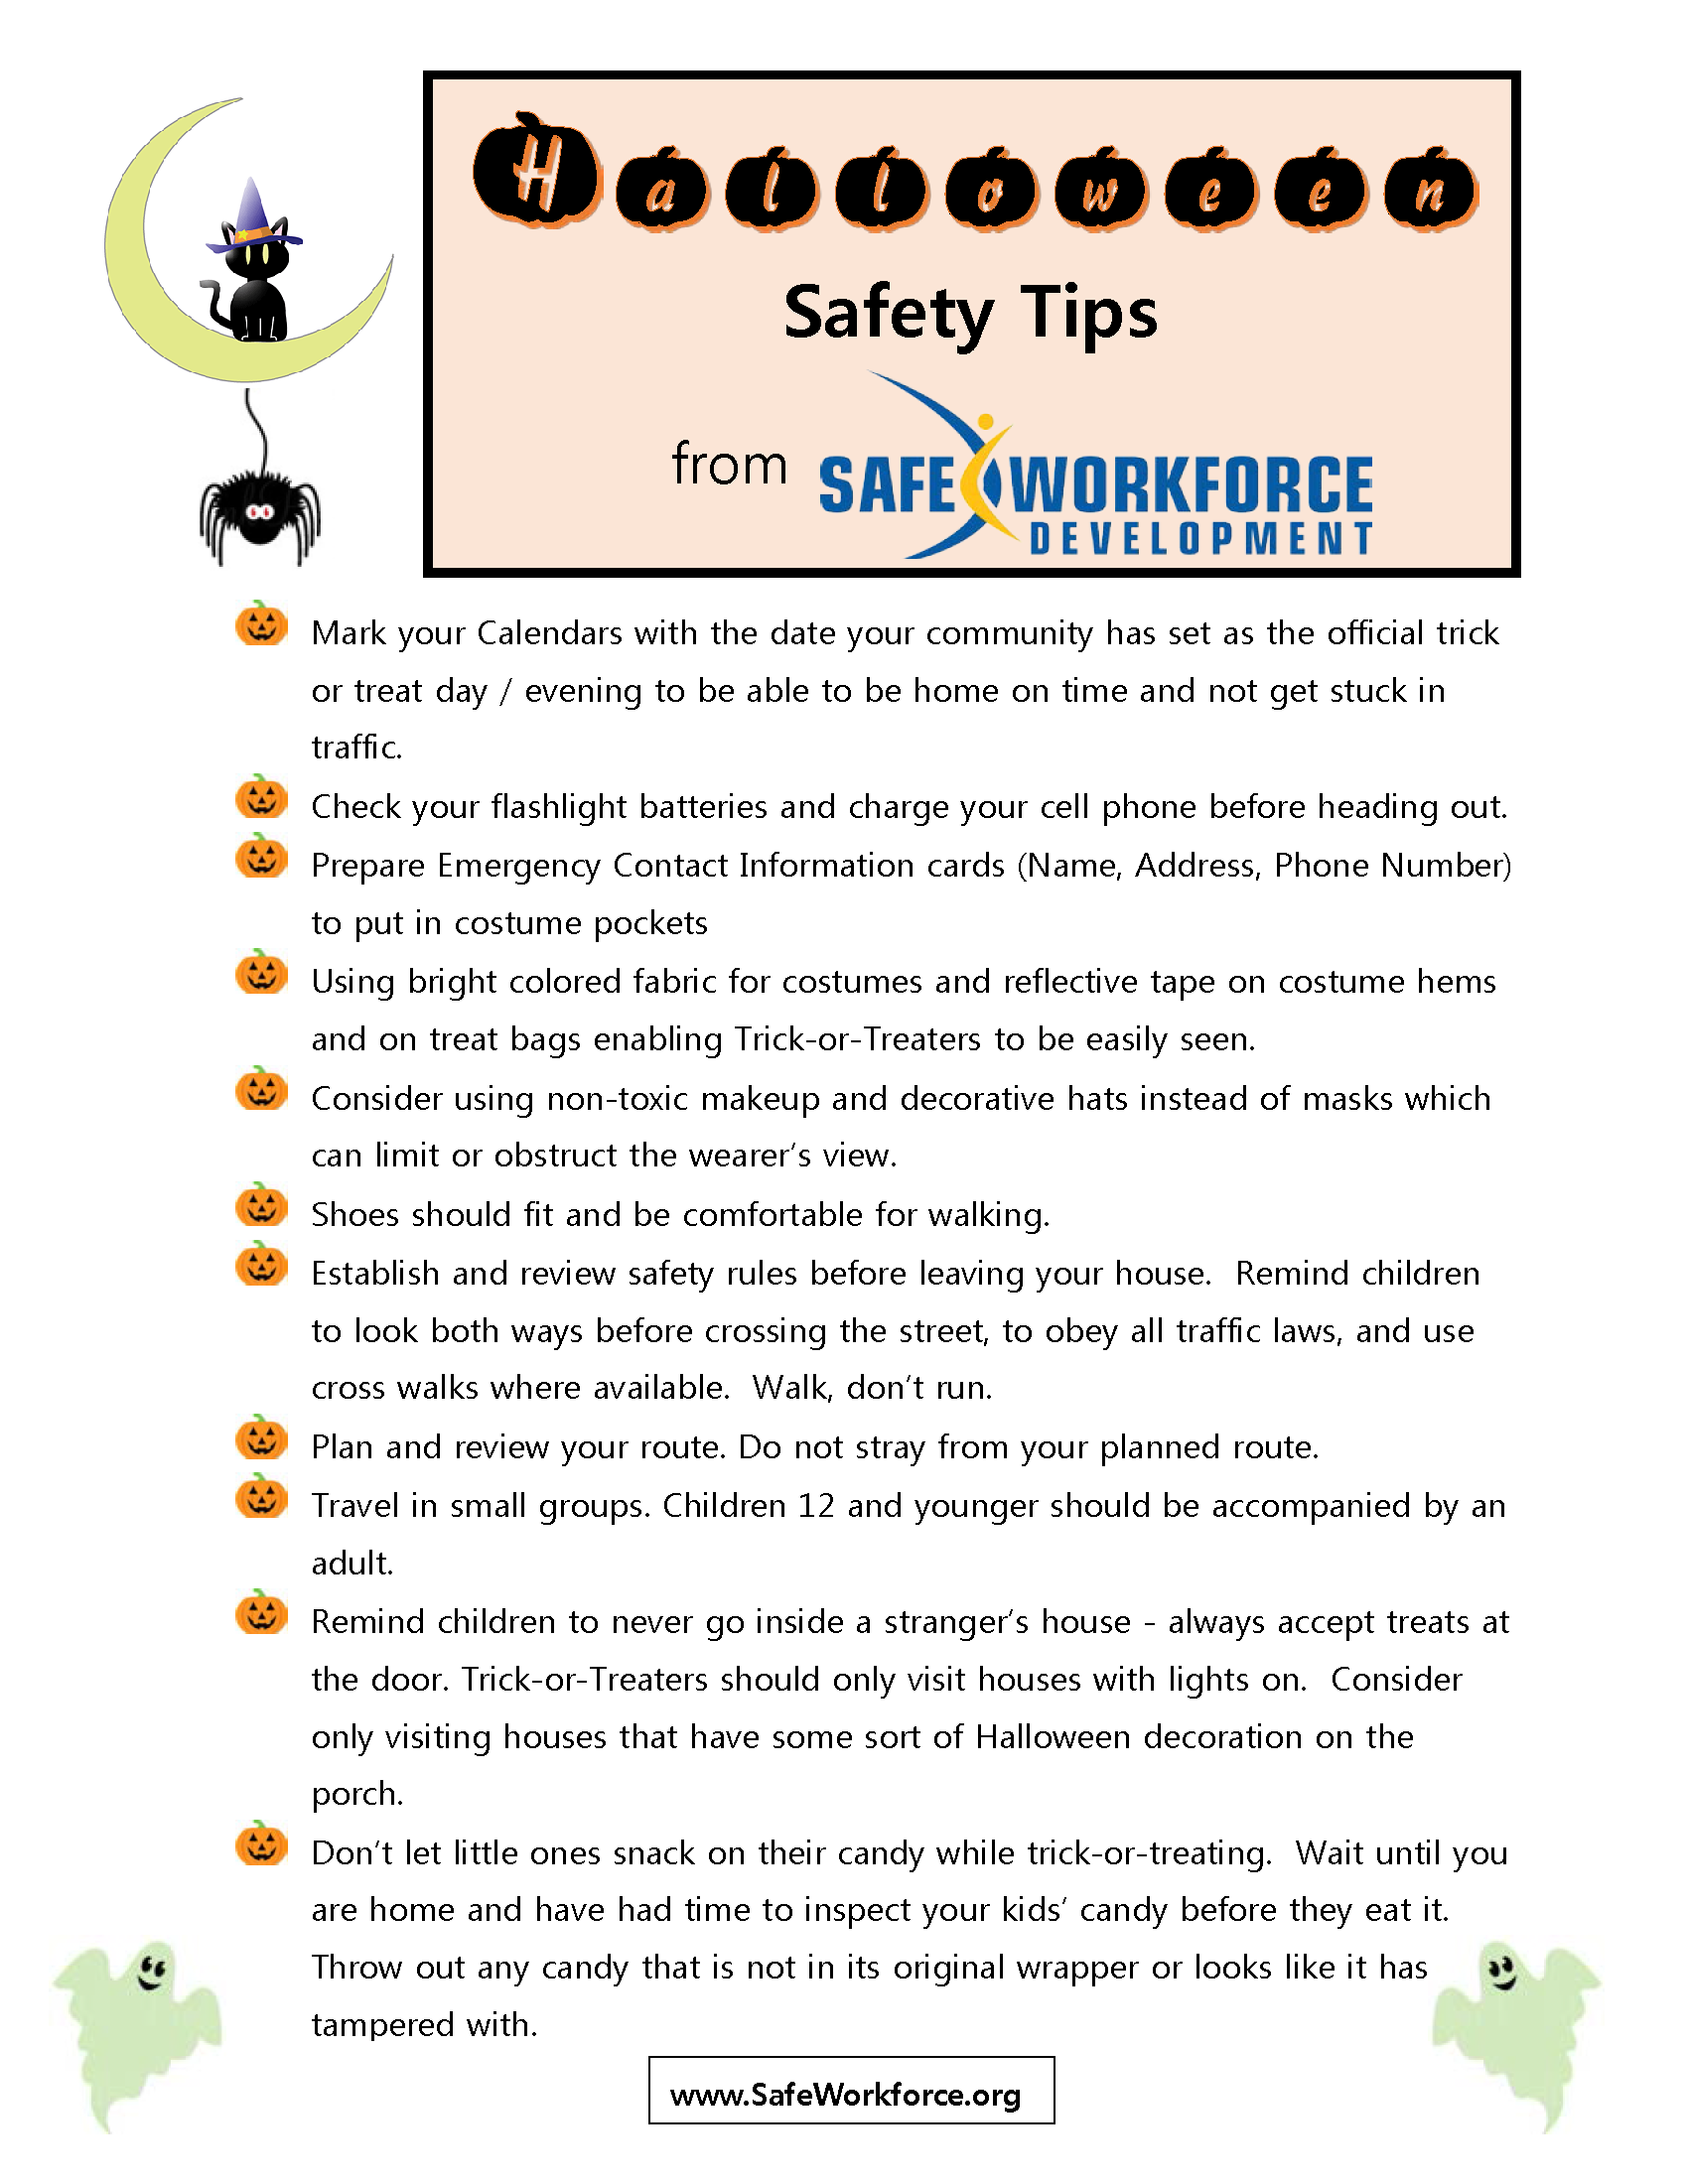 Safe Workforce Halloween Safety Tips 2015